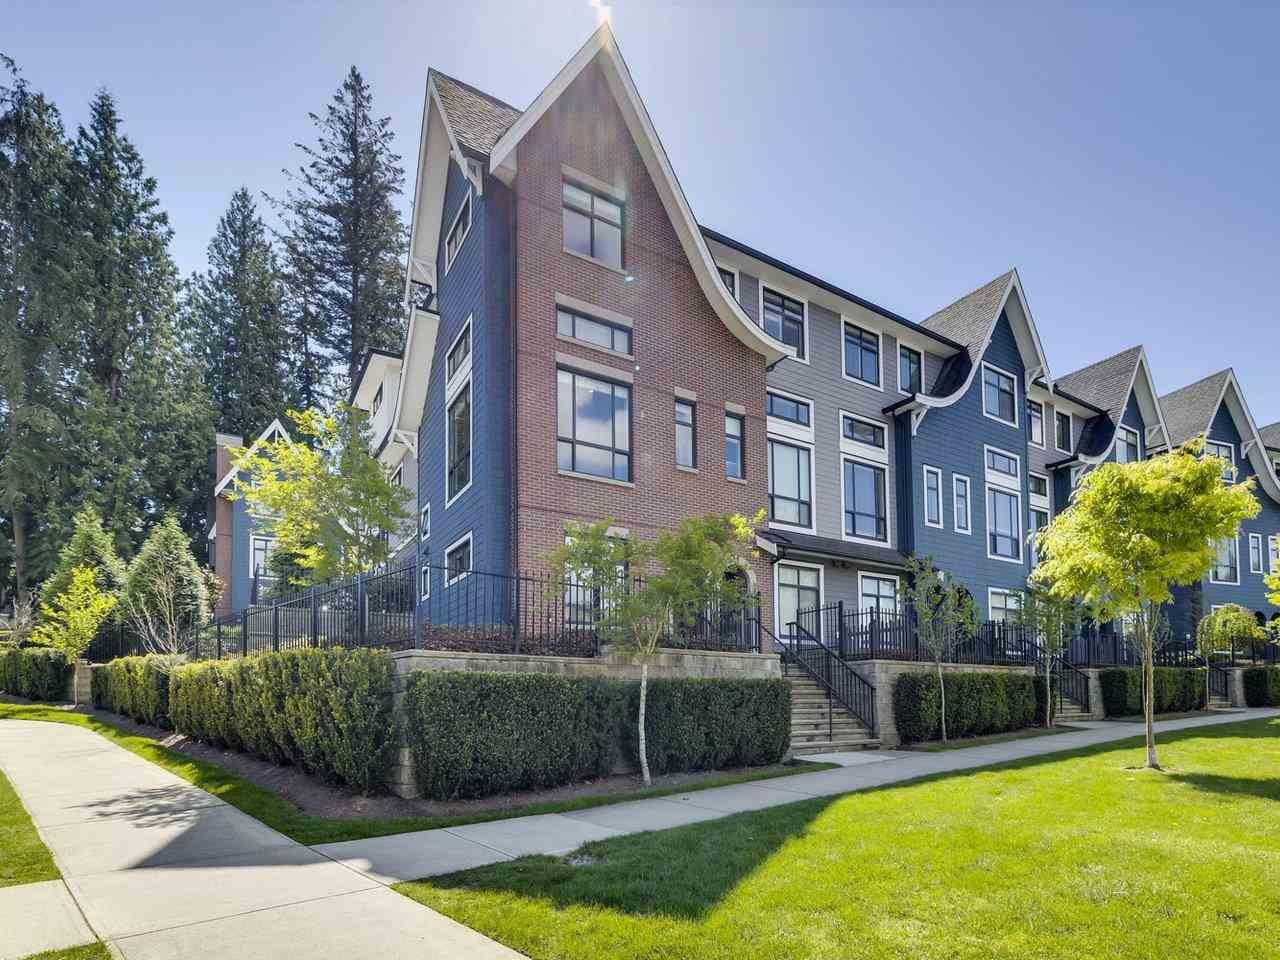 """Main Photo: 46 2888 156 Street in Surrey: Grandview Surrey Townhouse for sale in """"HYDE PARK"""" (South Surrey White Rock)  : MLS®# R2575934"""